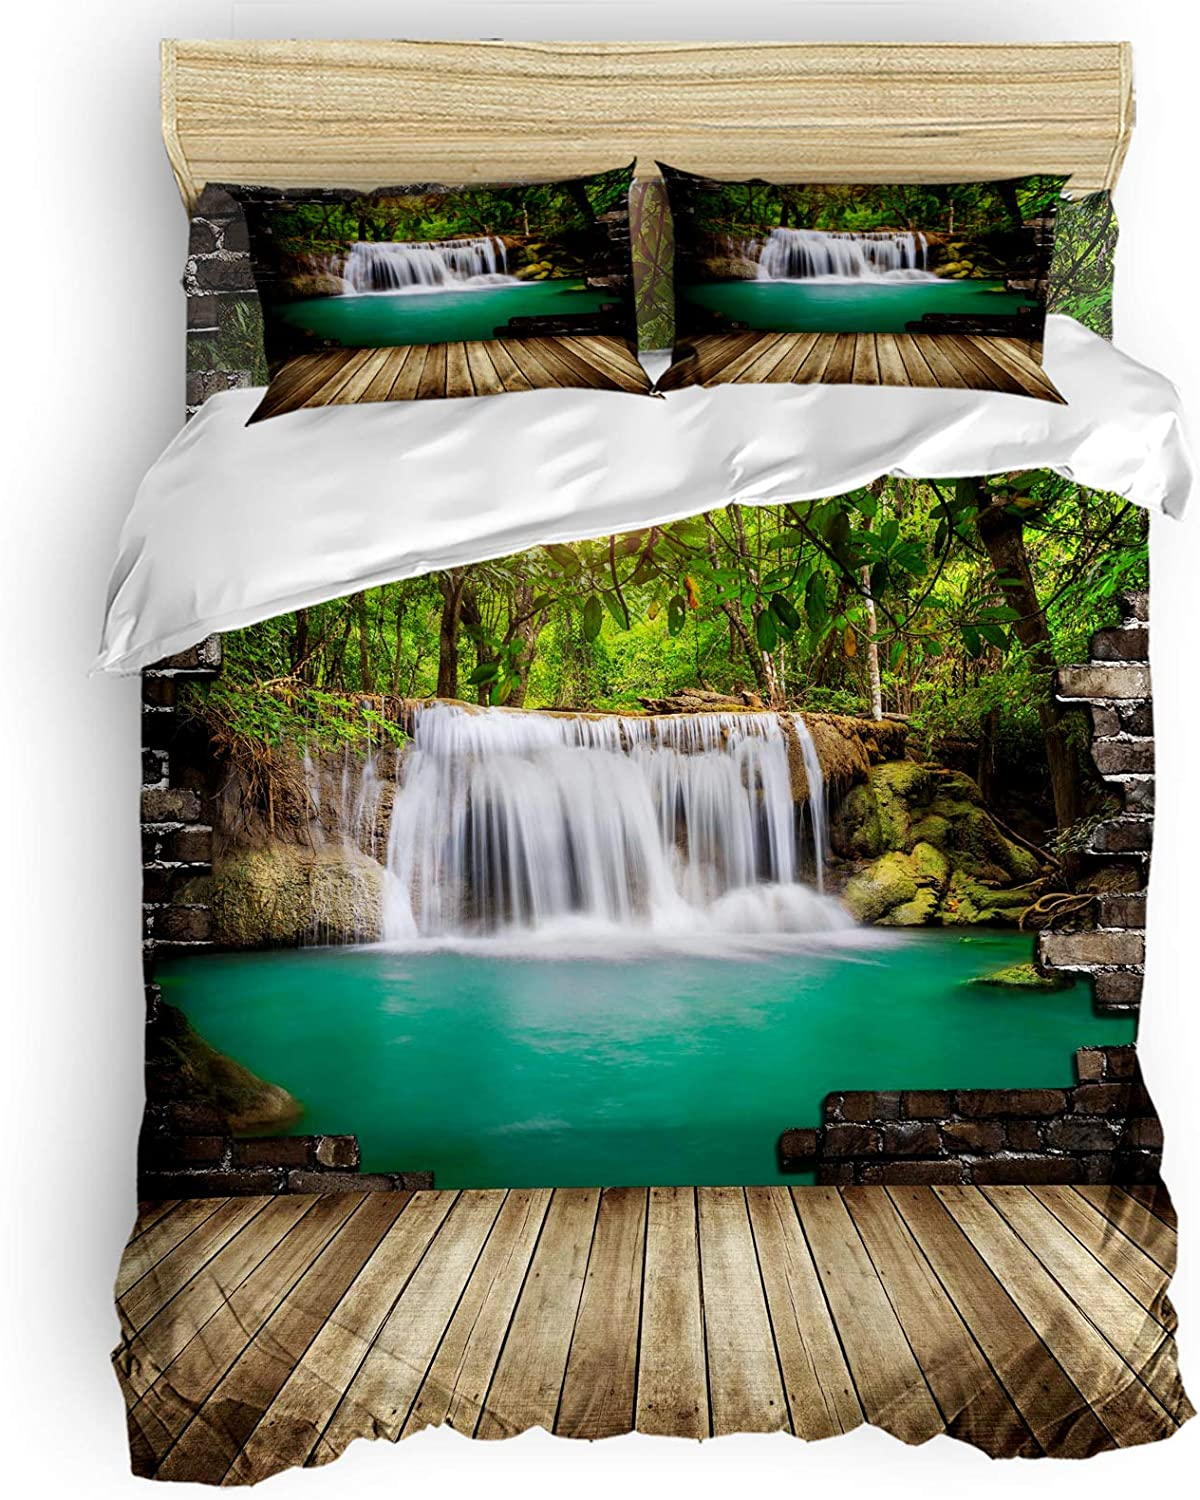 Prime Leader Duvet Cover Set King Califonia Forest Waterfa Las Spring new work Vegas Mall Size